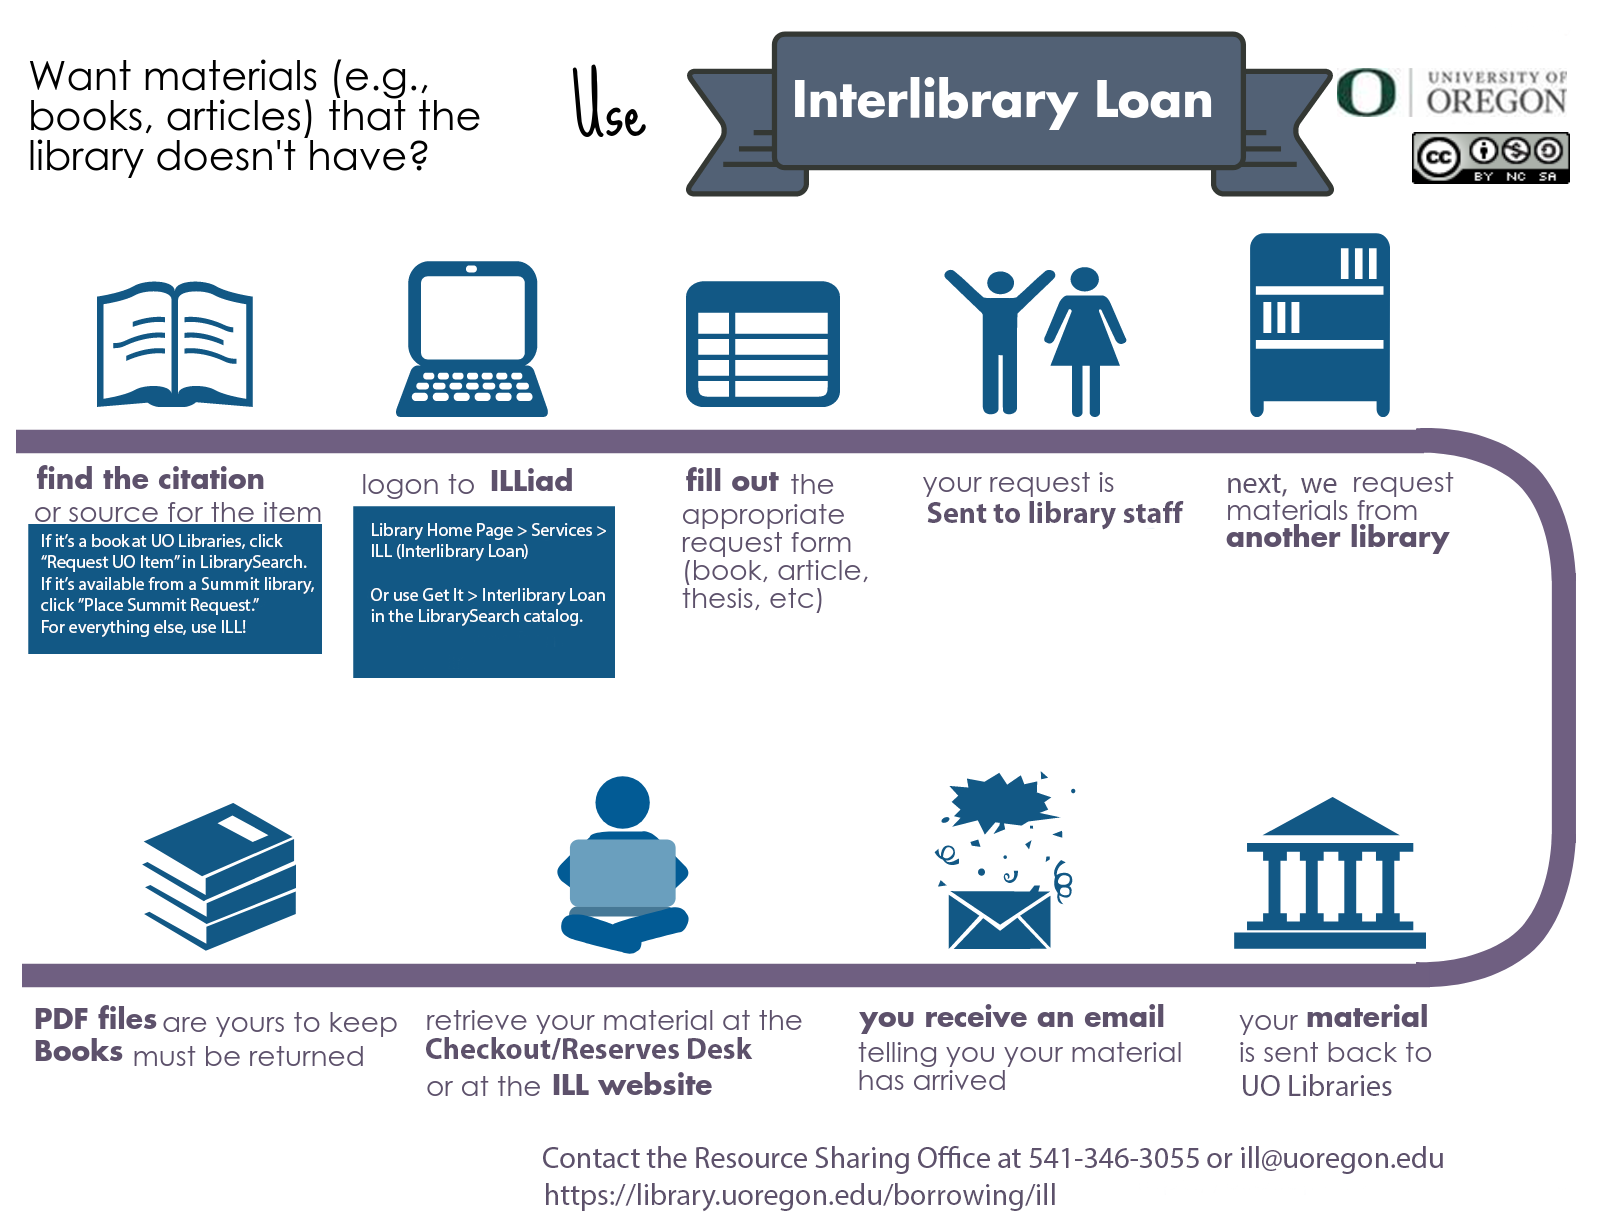 Infographic about Interlibrary Loan - Follow link for accessible text version